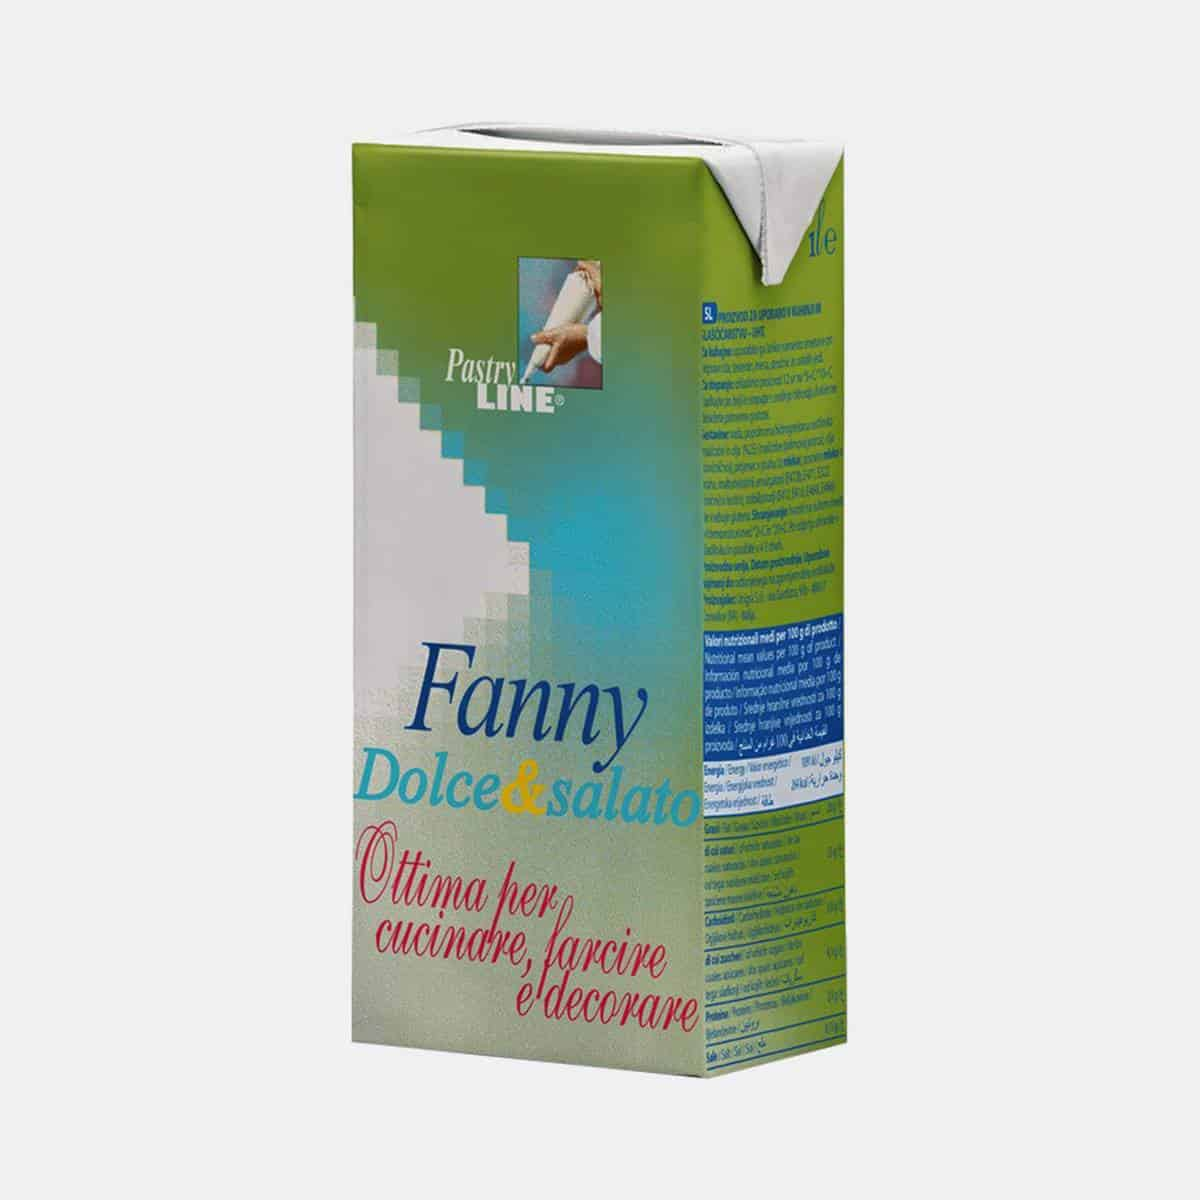 Fanny Dolce Salato Cream 1 Litre Package